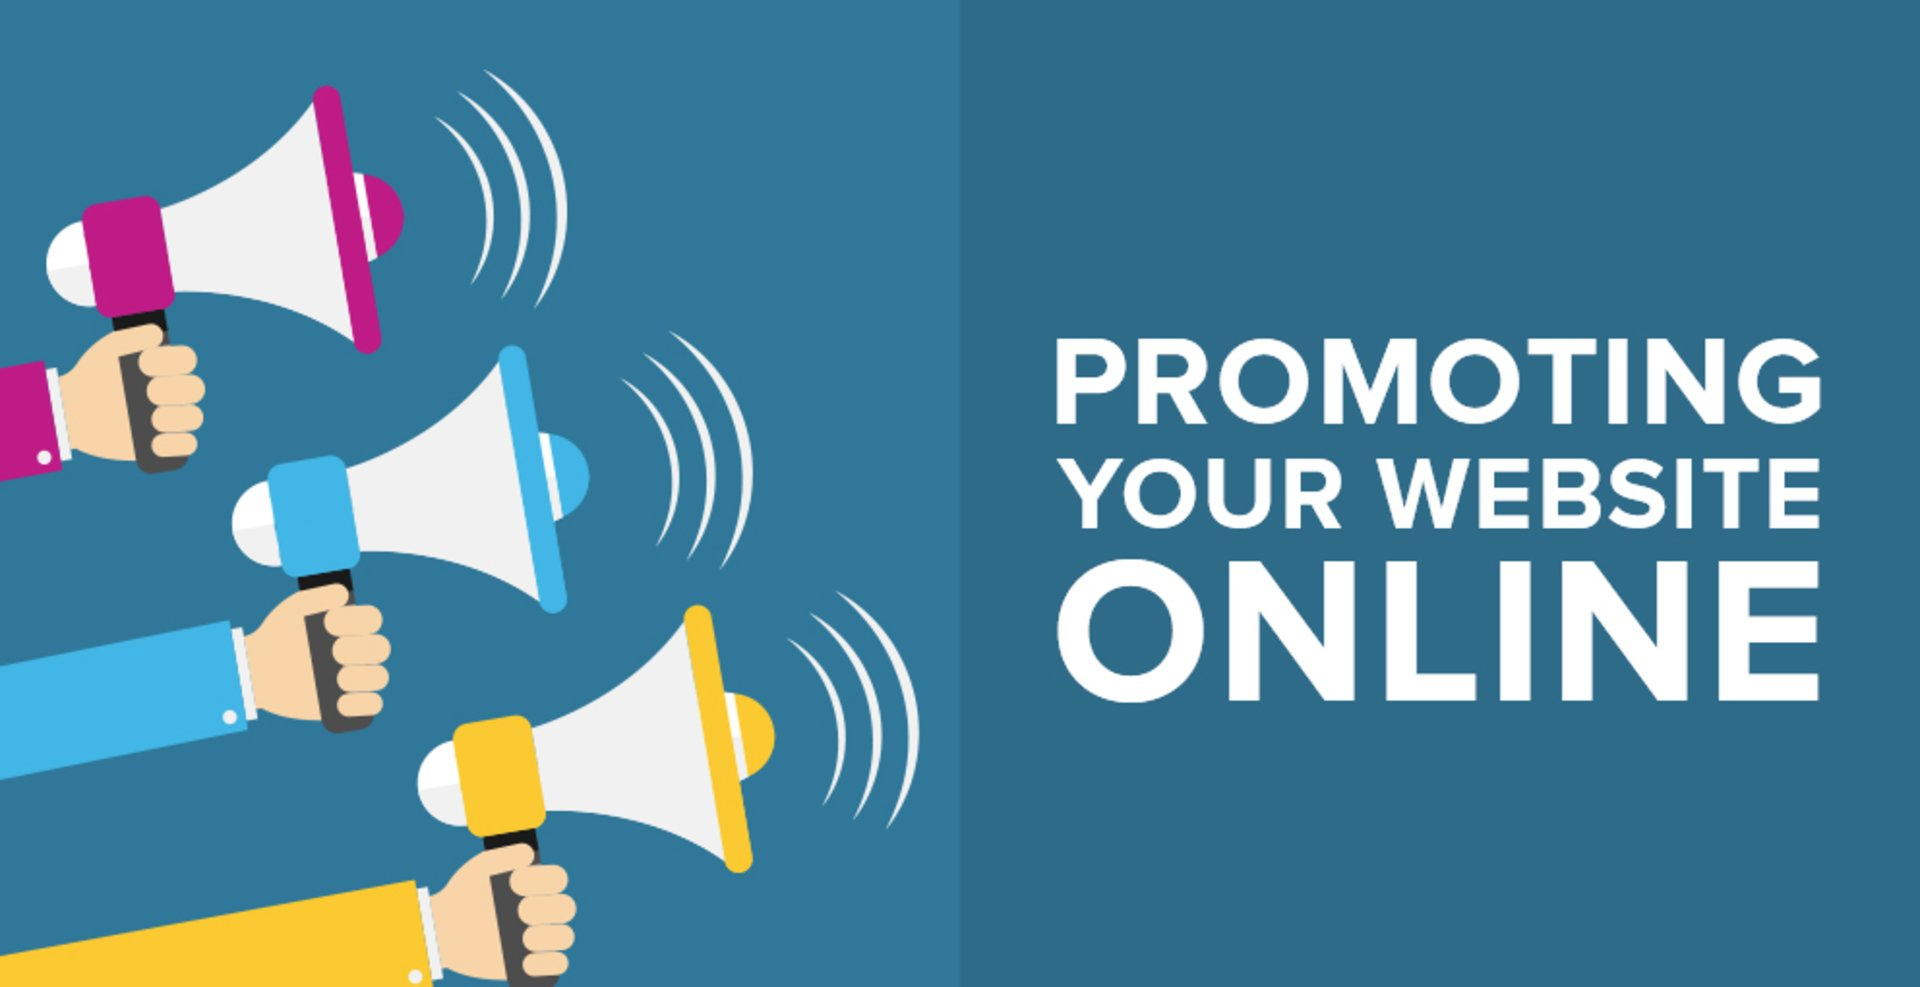 How to Promote Your Website